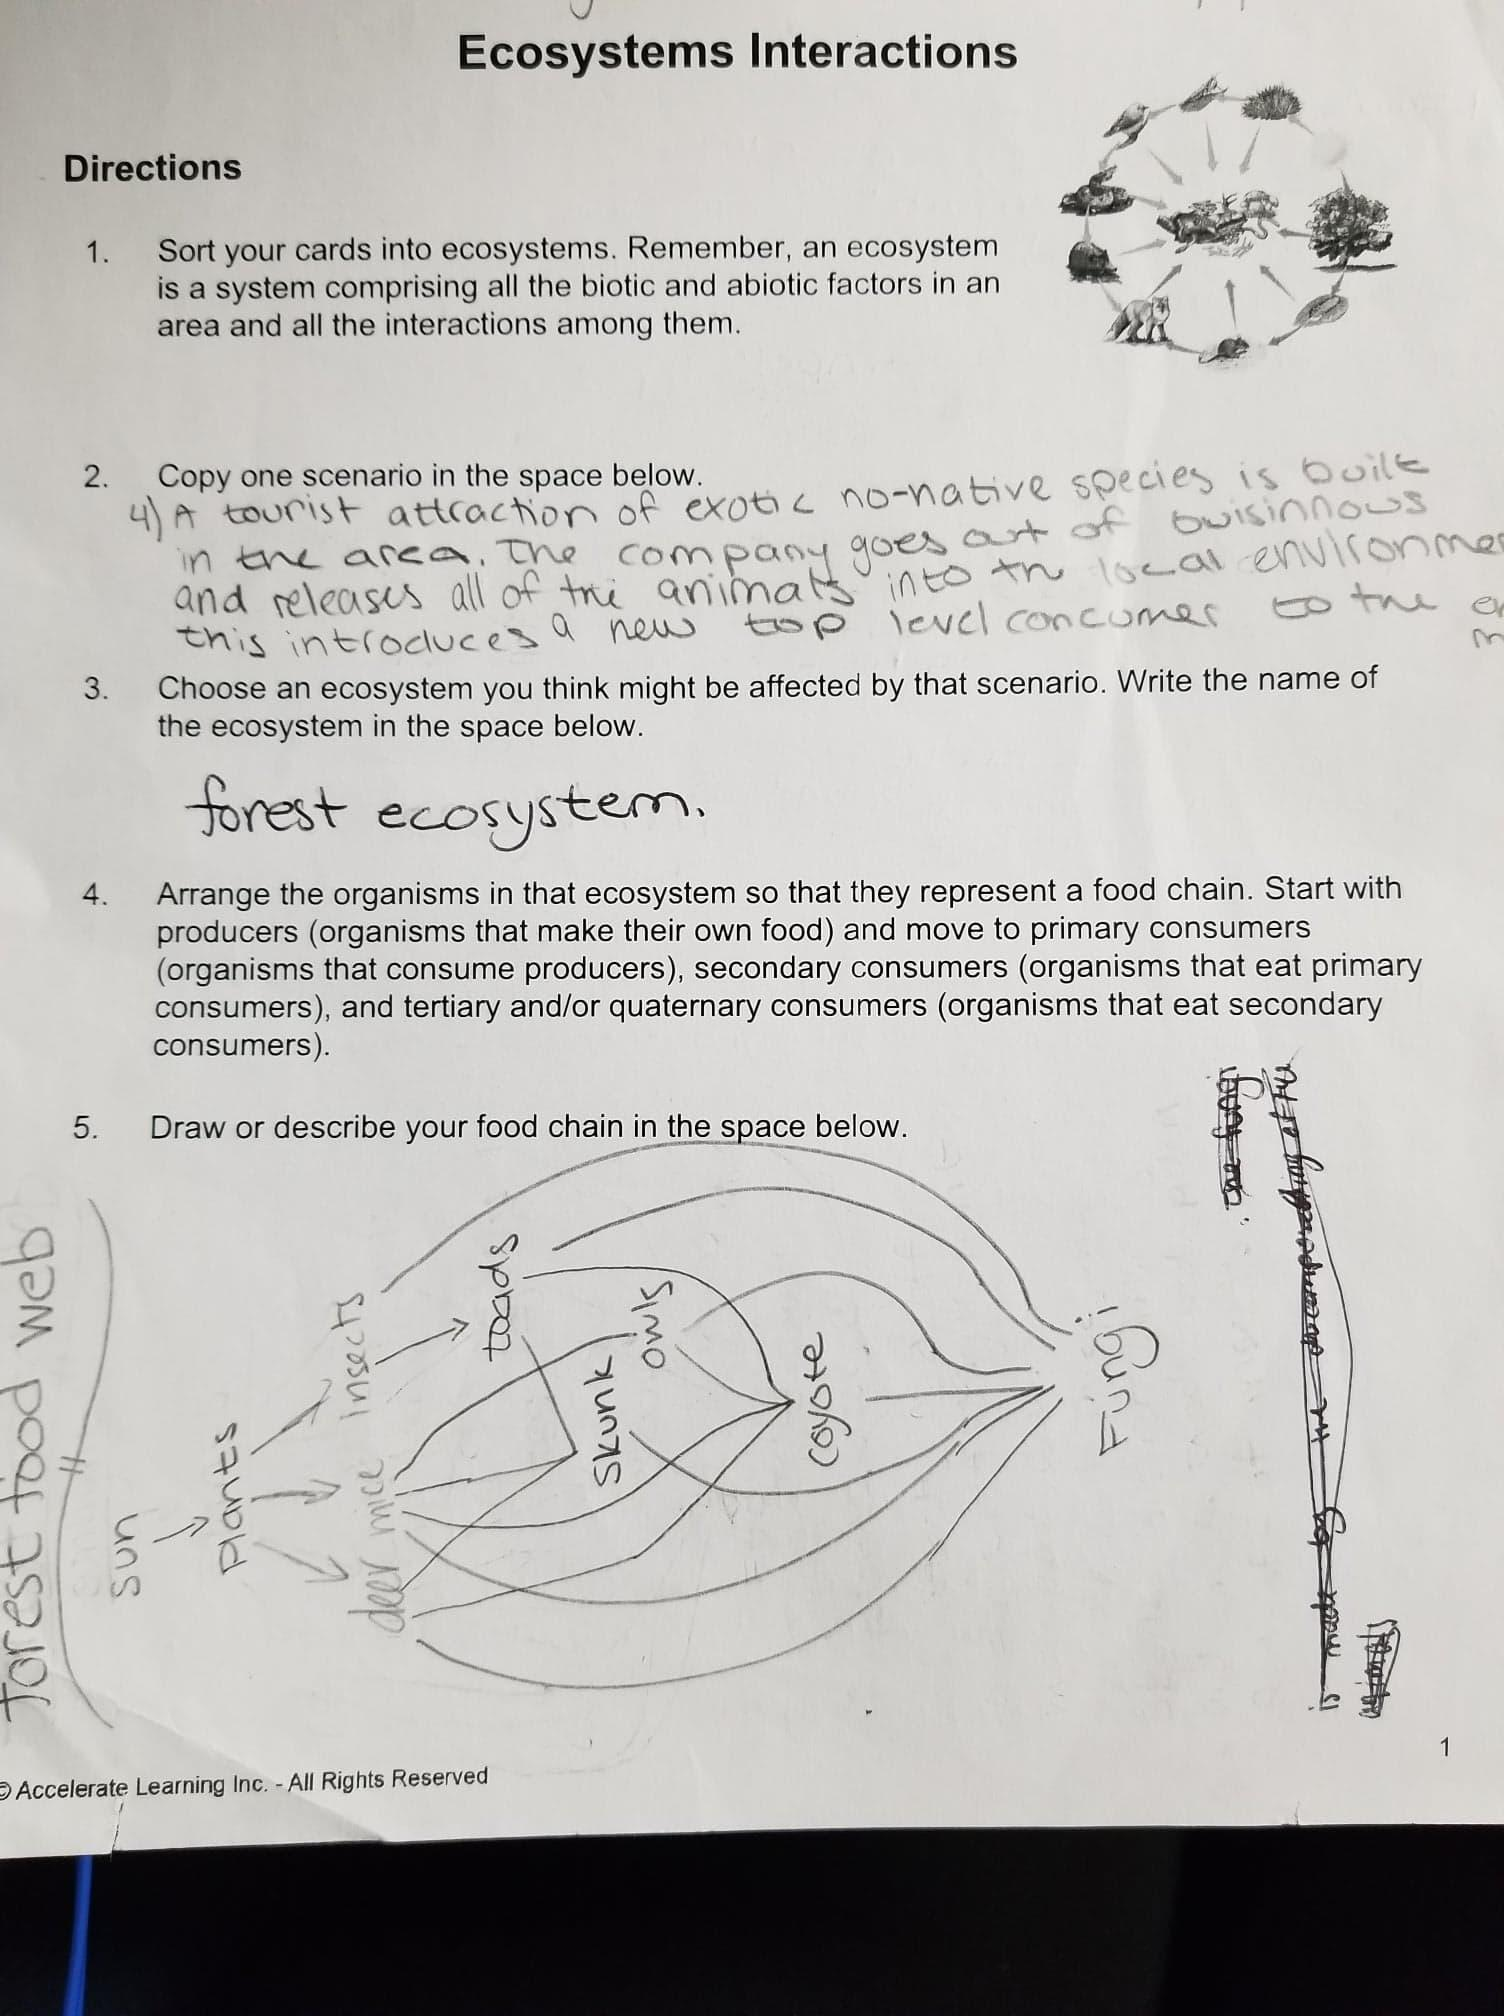 Accelerate Learning Worksheet Answers 7th Grade Science